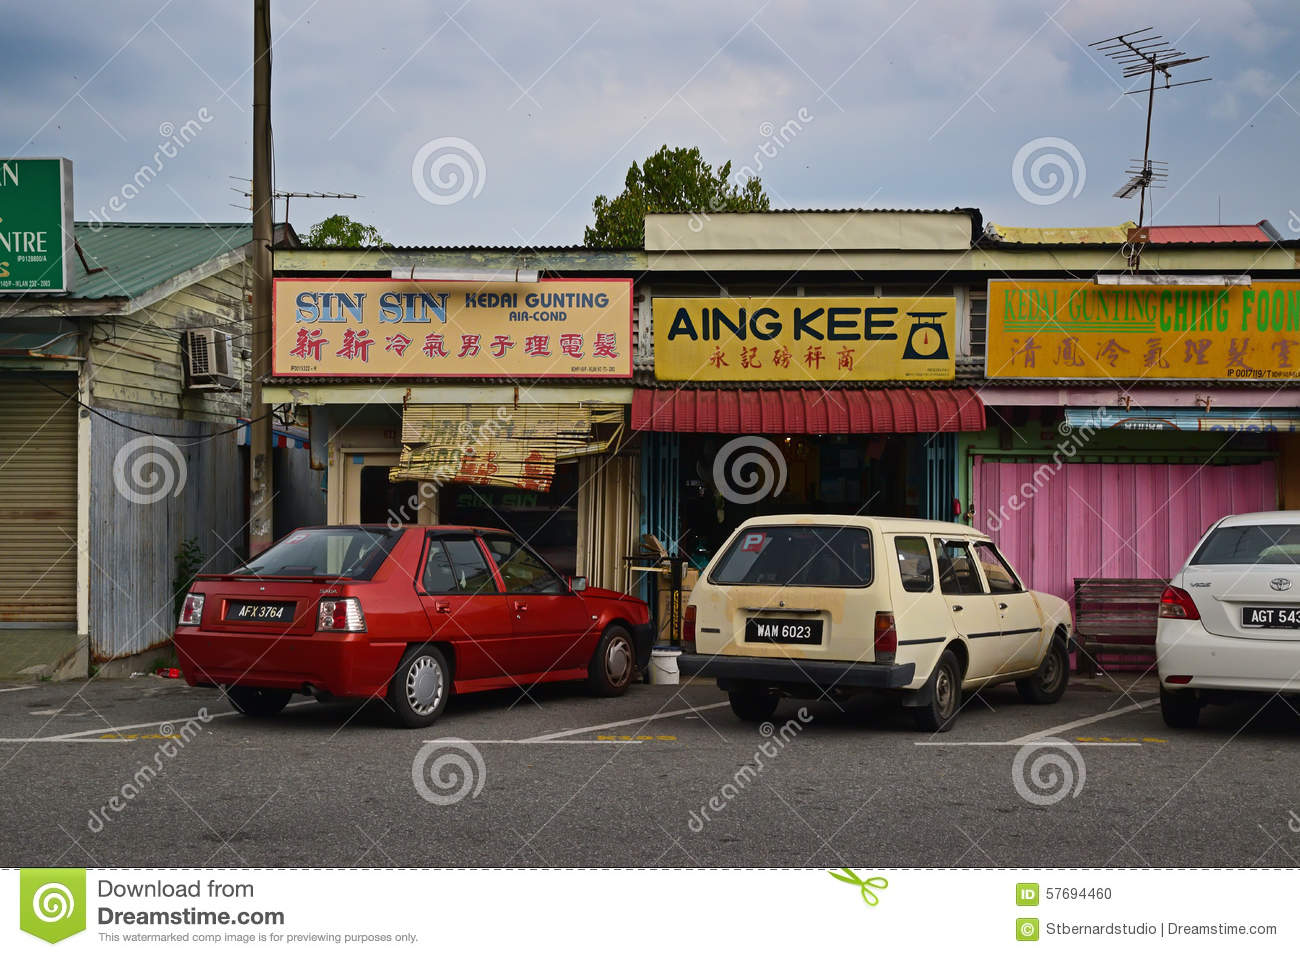 Car Wash & Valet Business For Sale Malaysia